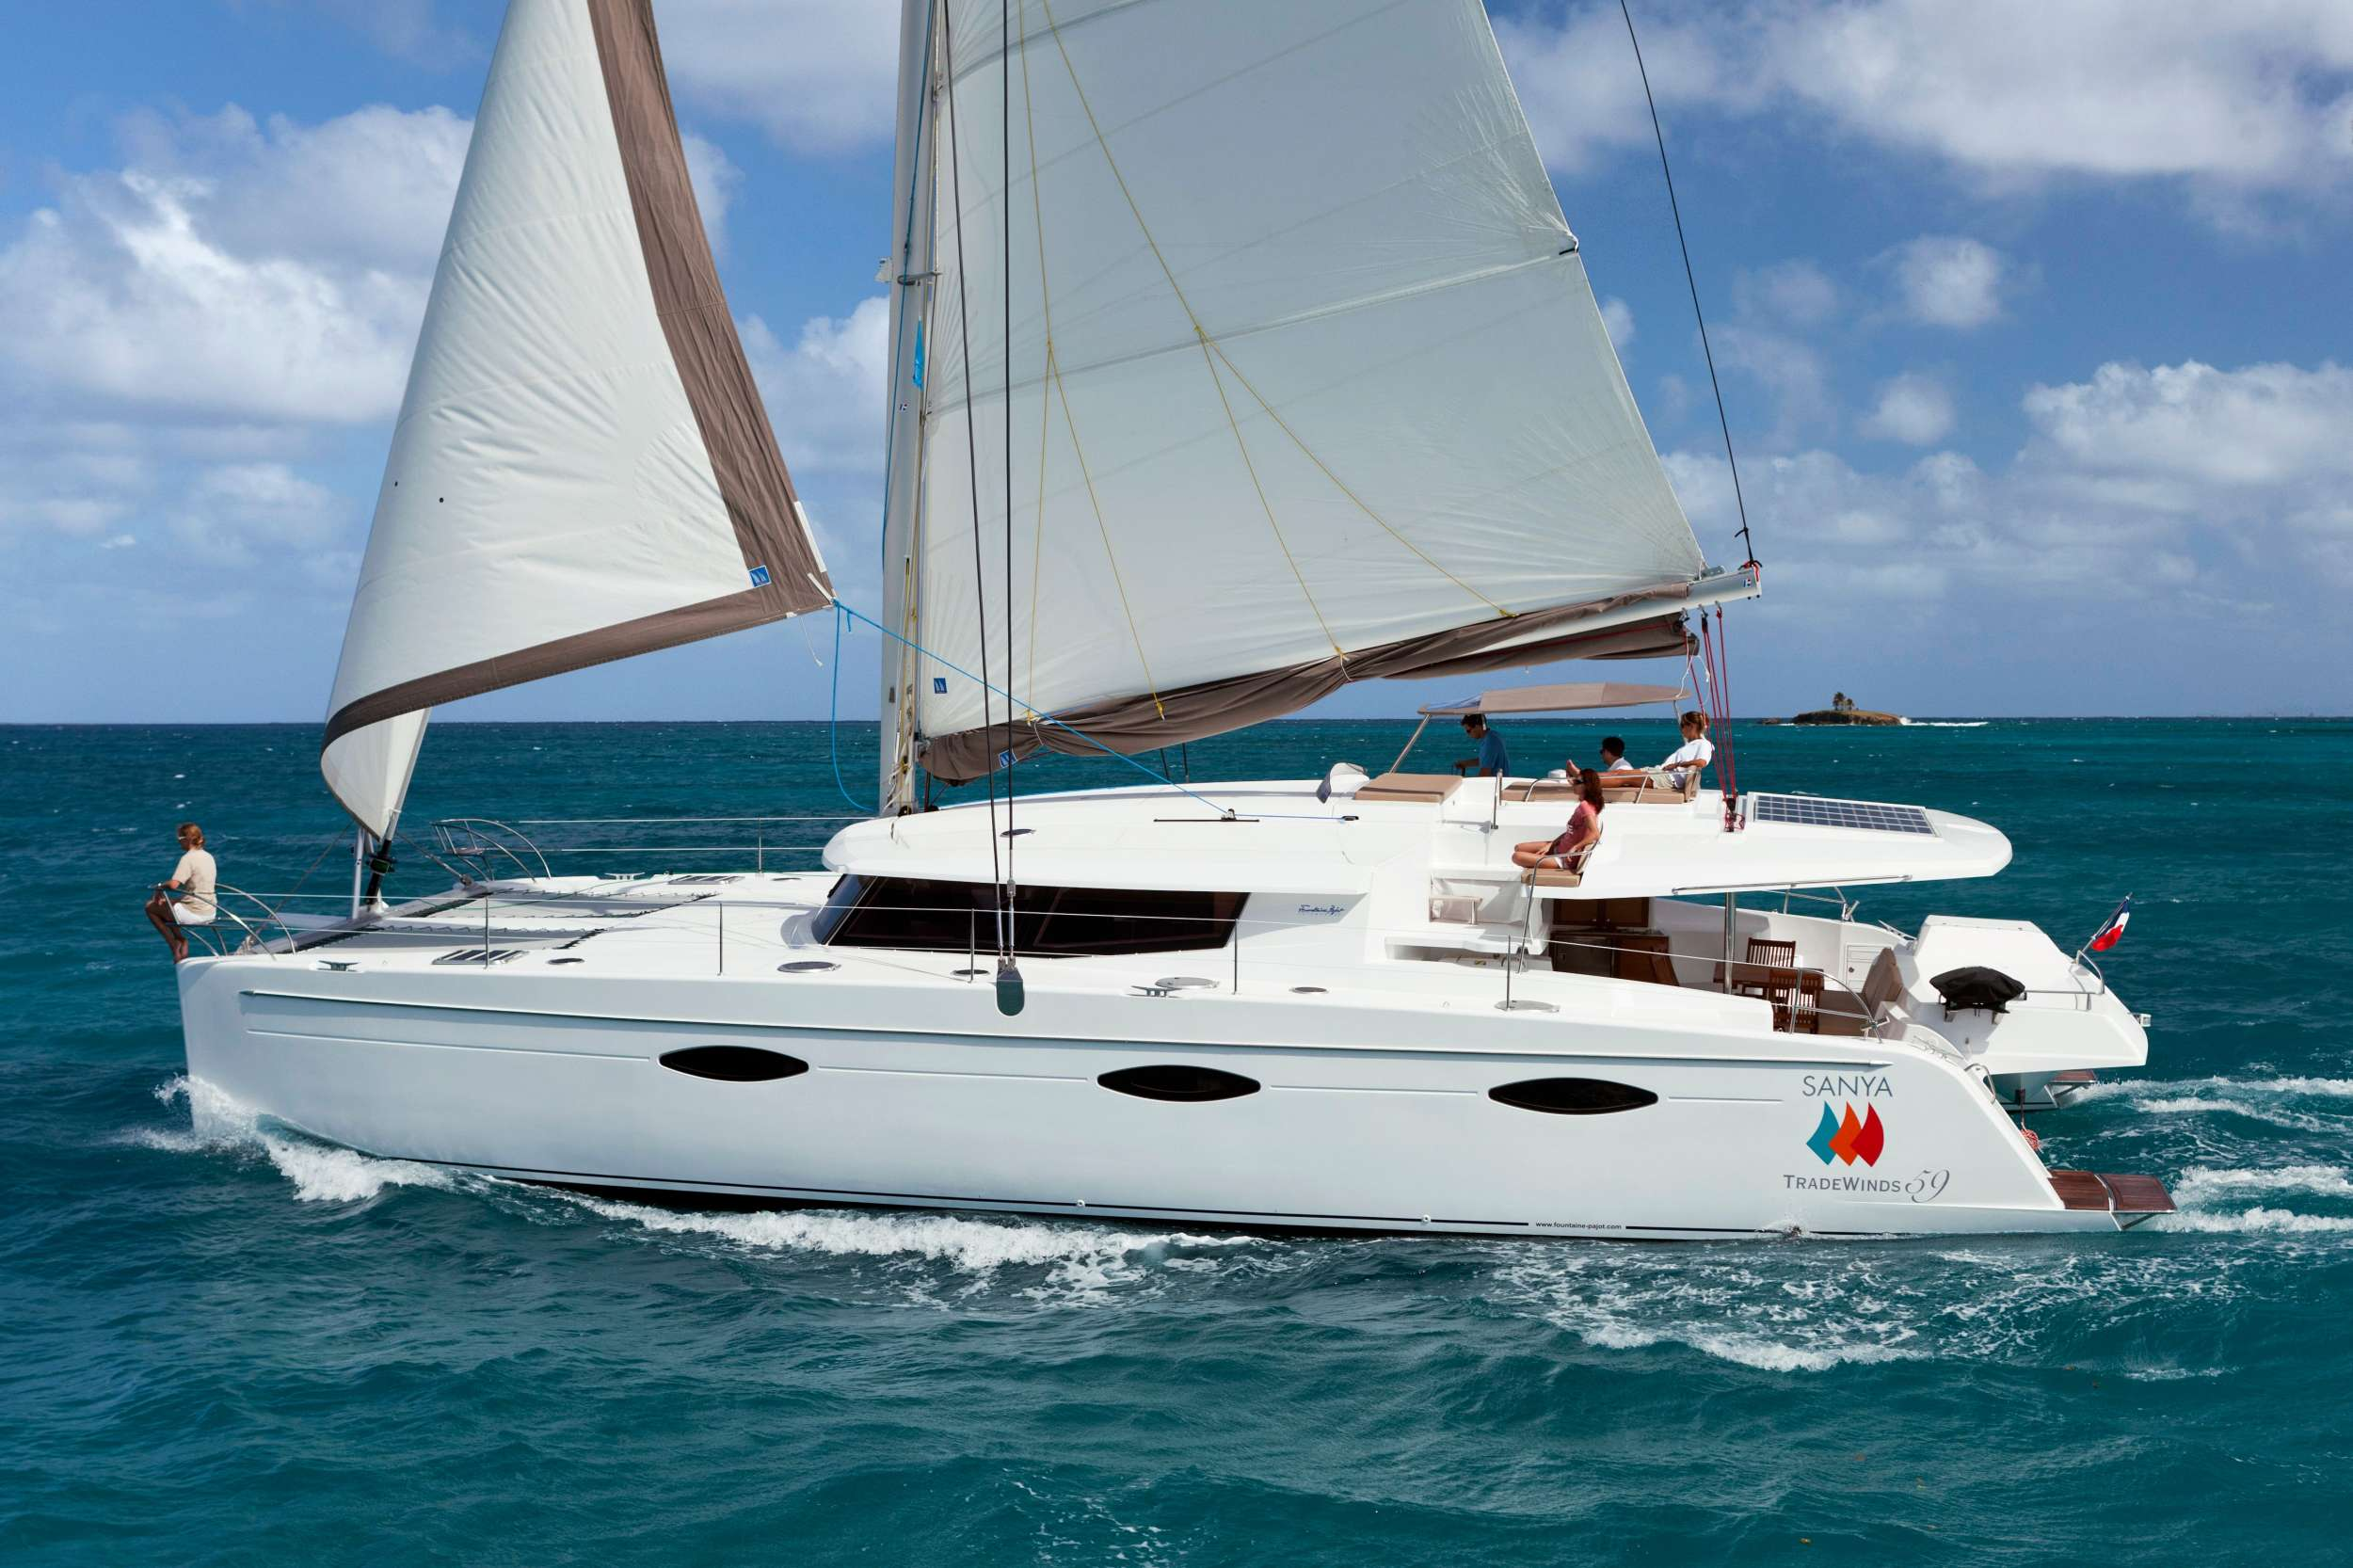 Main image of ALIVE yacht